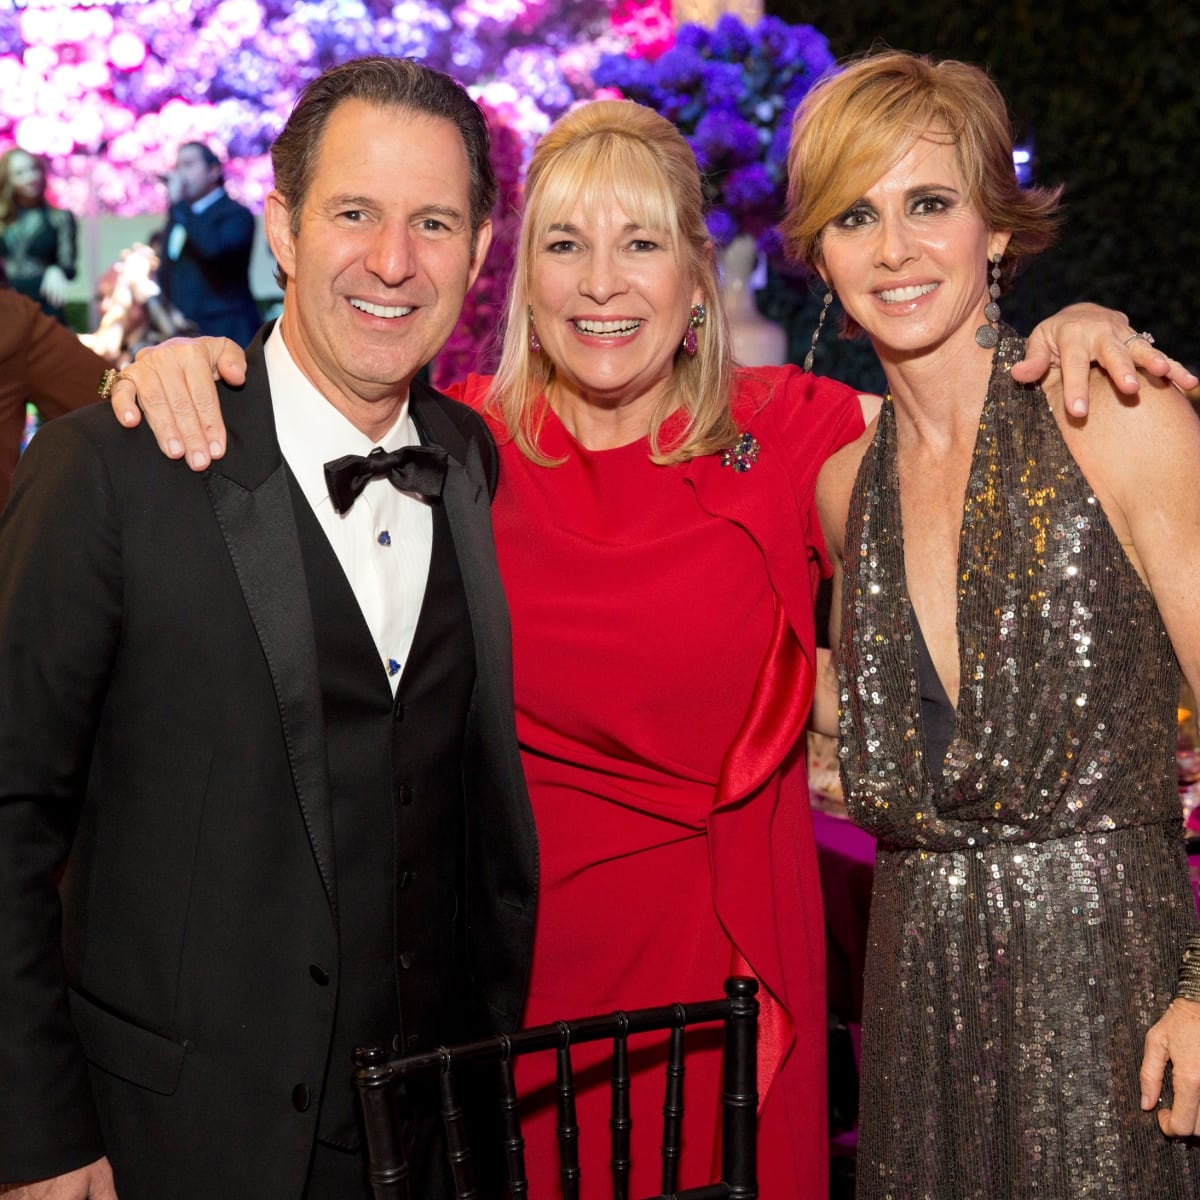 Kitch Taub; Nancy Abendshein; Martha Katherine Long at Museum of Fine Arts Houston Gala